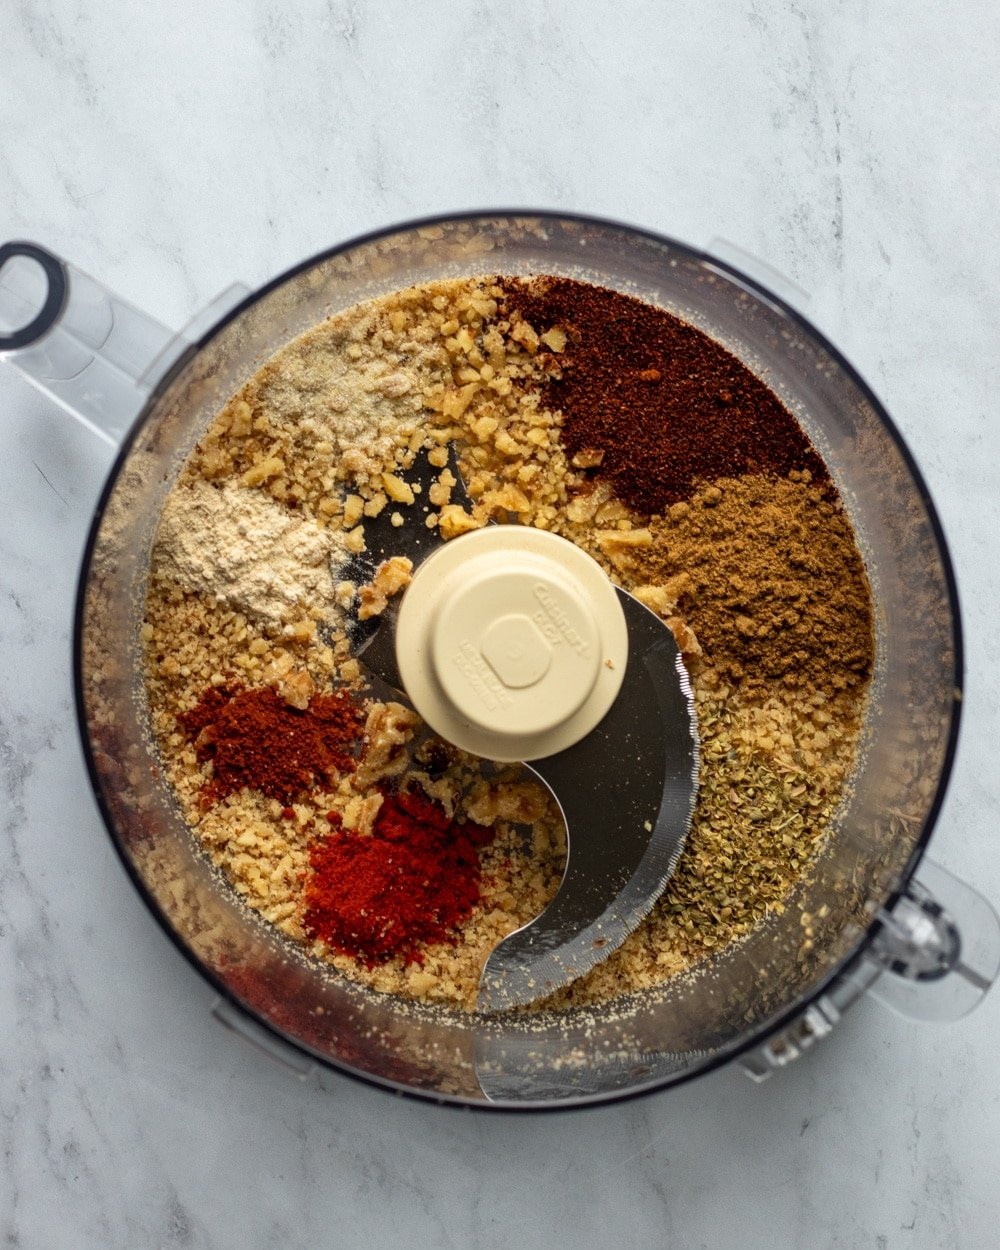 overhead shot of walnuts and spices in food processor